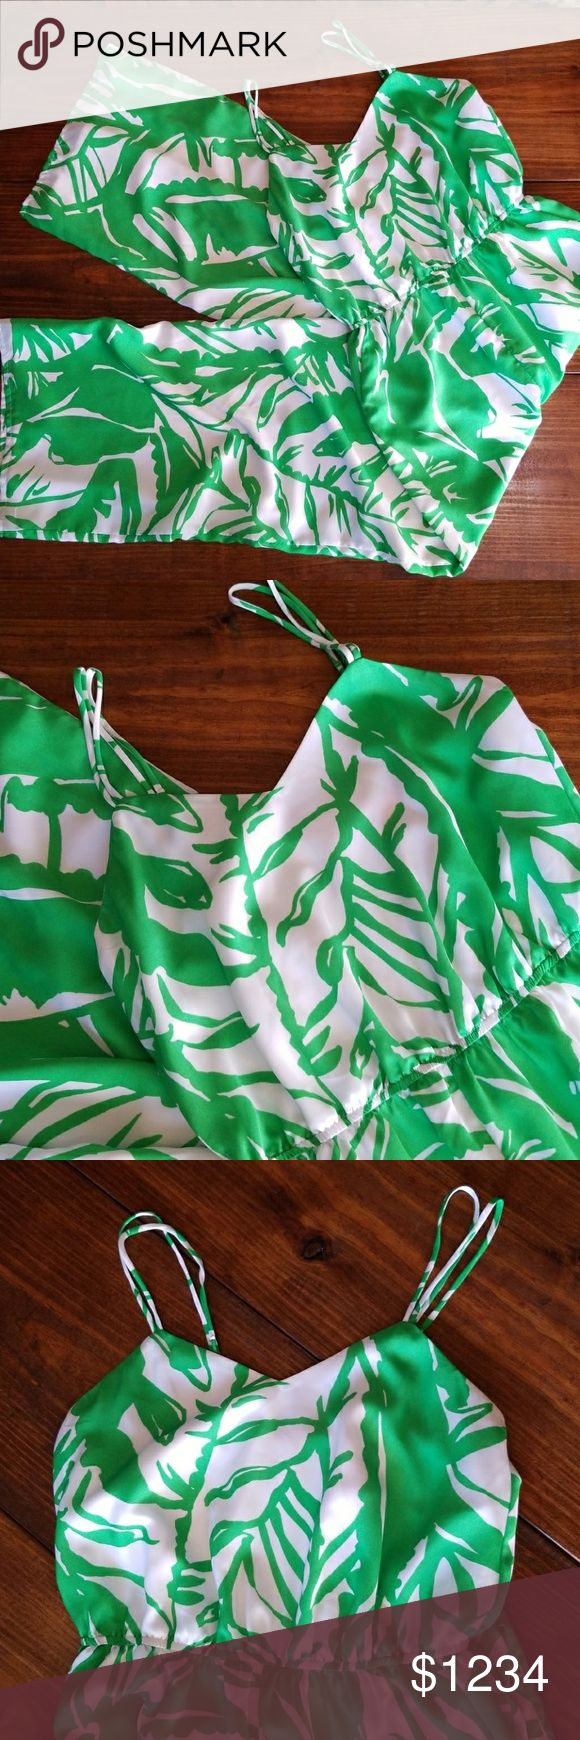 Lilly Pulitzer   For Target Boom Boom Jumpsuit Lilly Pulitzer, Lilly for Target green and white Boom Boom jumpsuit in white and green. Gorgeous and comfortable! In excellent used condition.  100% Polyester Elastic waist with front pockets. Machine washable. Sweetheart neckline. Back zip closure, white zip pull is exposed. Gold tone hardware on adjustable straps and hook and eye closure. Belt and accessories seen in stock photo are not included. Please see photos #2-8 for actual item. Lilly…